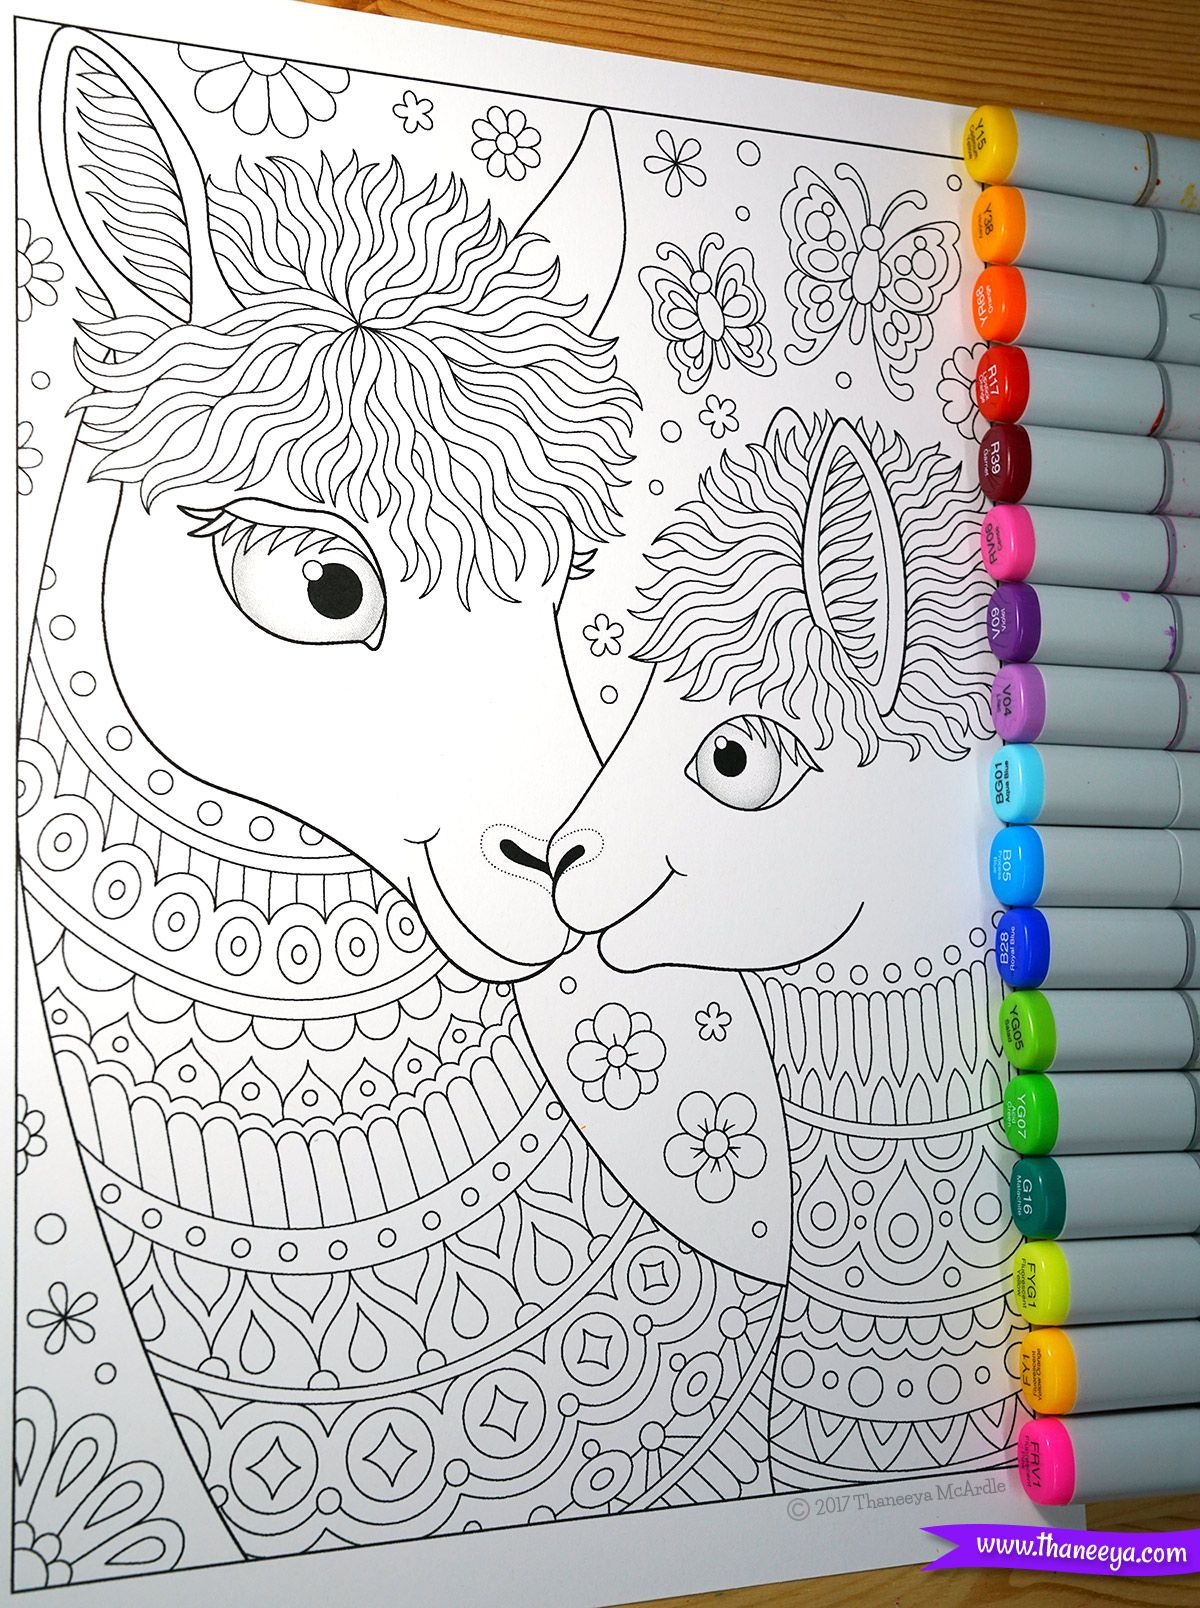 Llama Mama And Baby Coloring Page From Thaneeya Mcardle S Delightful Animal Families Coloring Book Family Coloring Pages Coloring Books Cool Coloring Pages